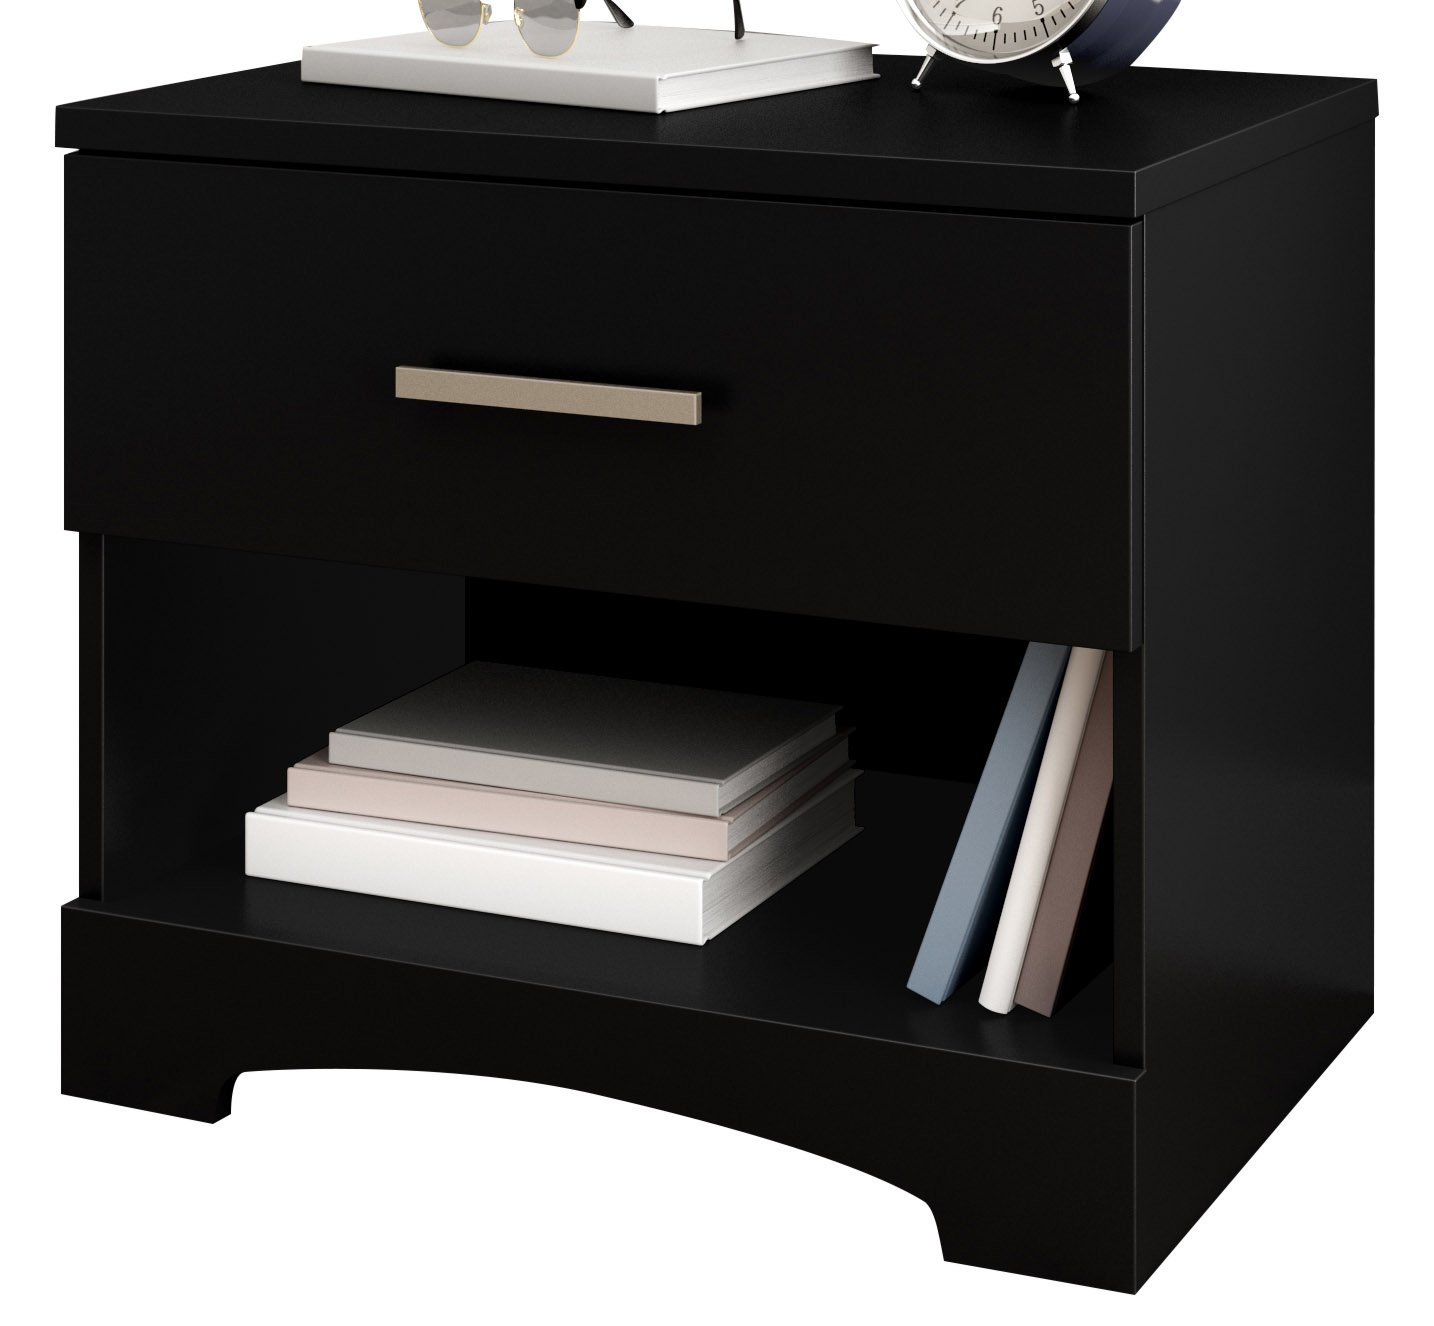 South Shore Furniture 10449 Gramercy 1-Drawer Nightstand, Pure Black